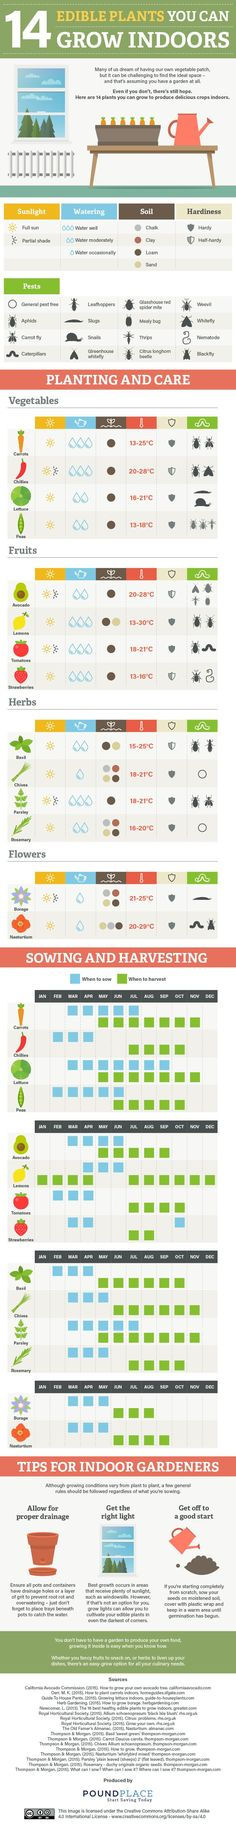 14 Edible Plants You Can Grow Indoors #Infographic #Gardening #Plants